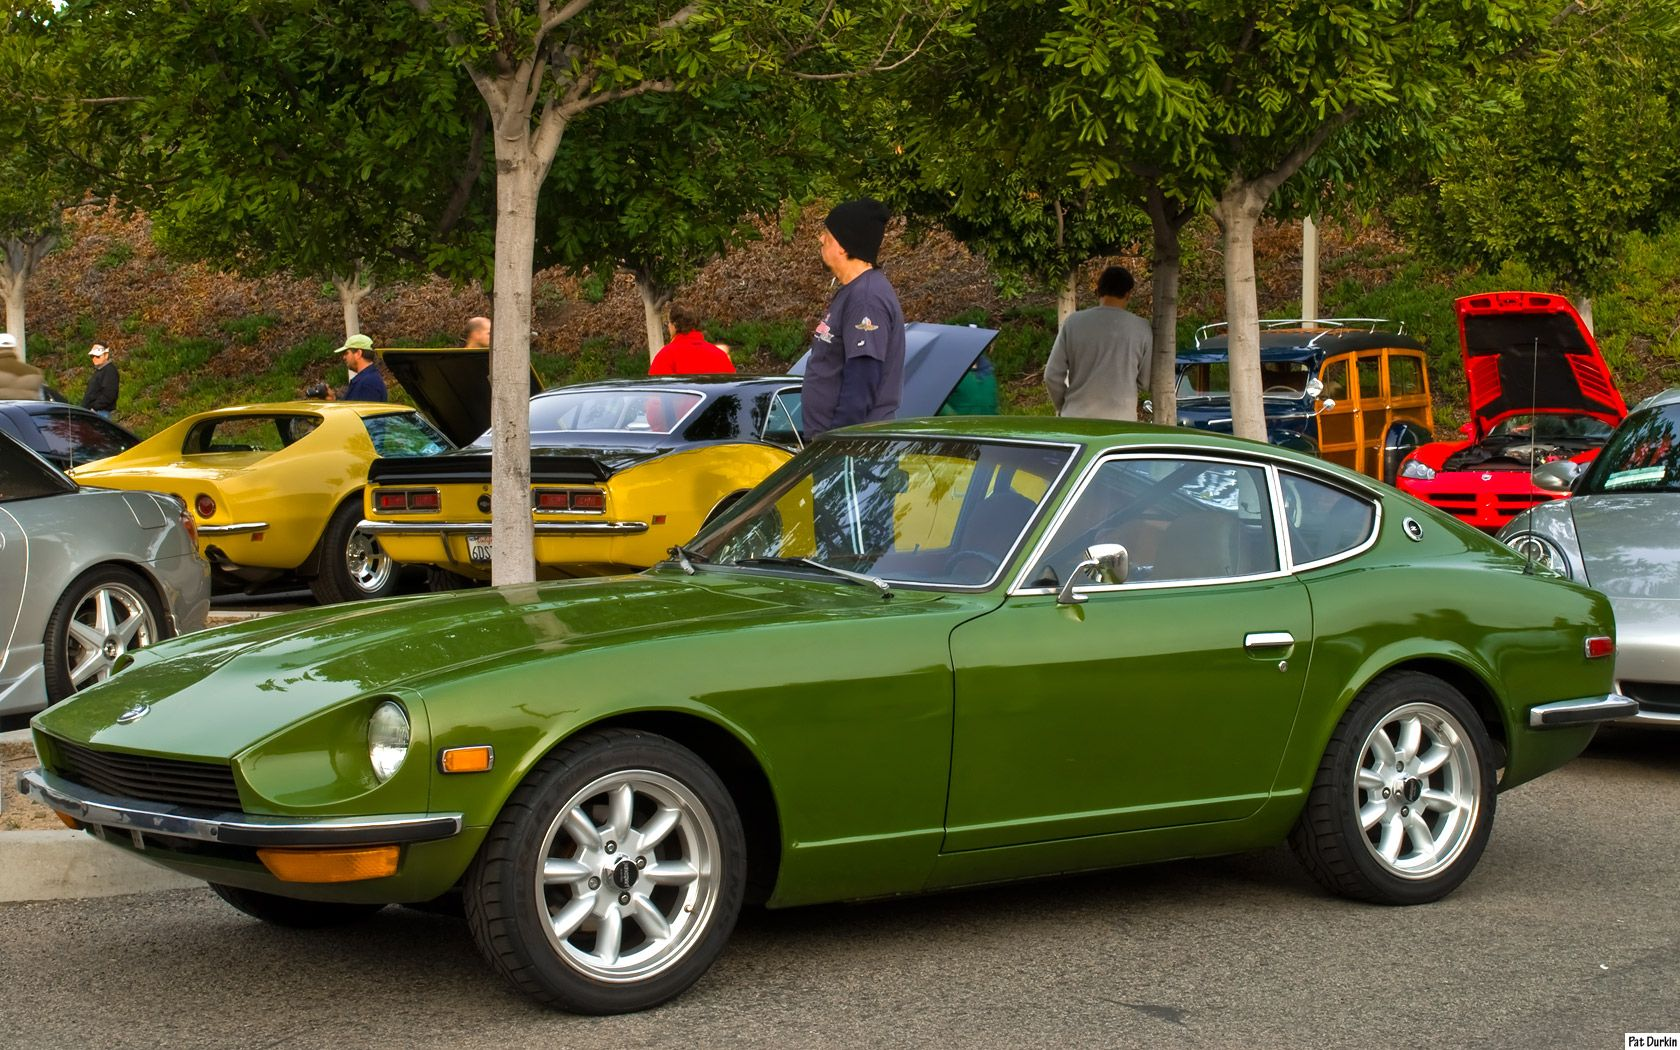 71 datsun 240z i had this car and another like it in 72 z 71 datsun 240z i had this car and another like it in 72 vanachro Gallery